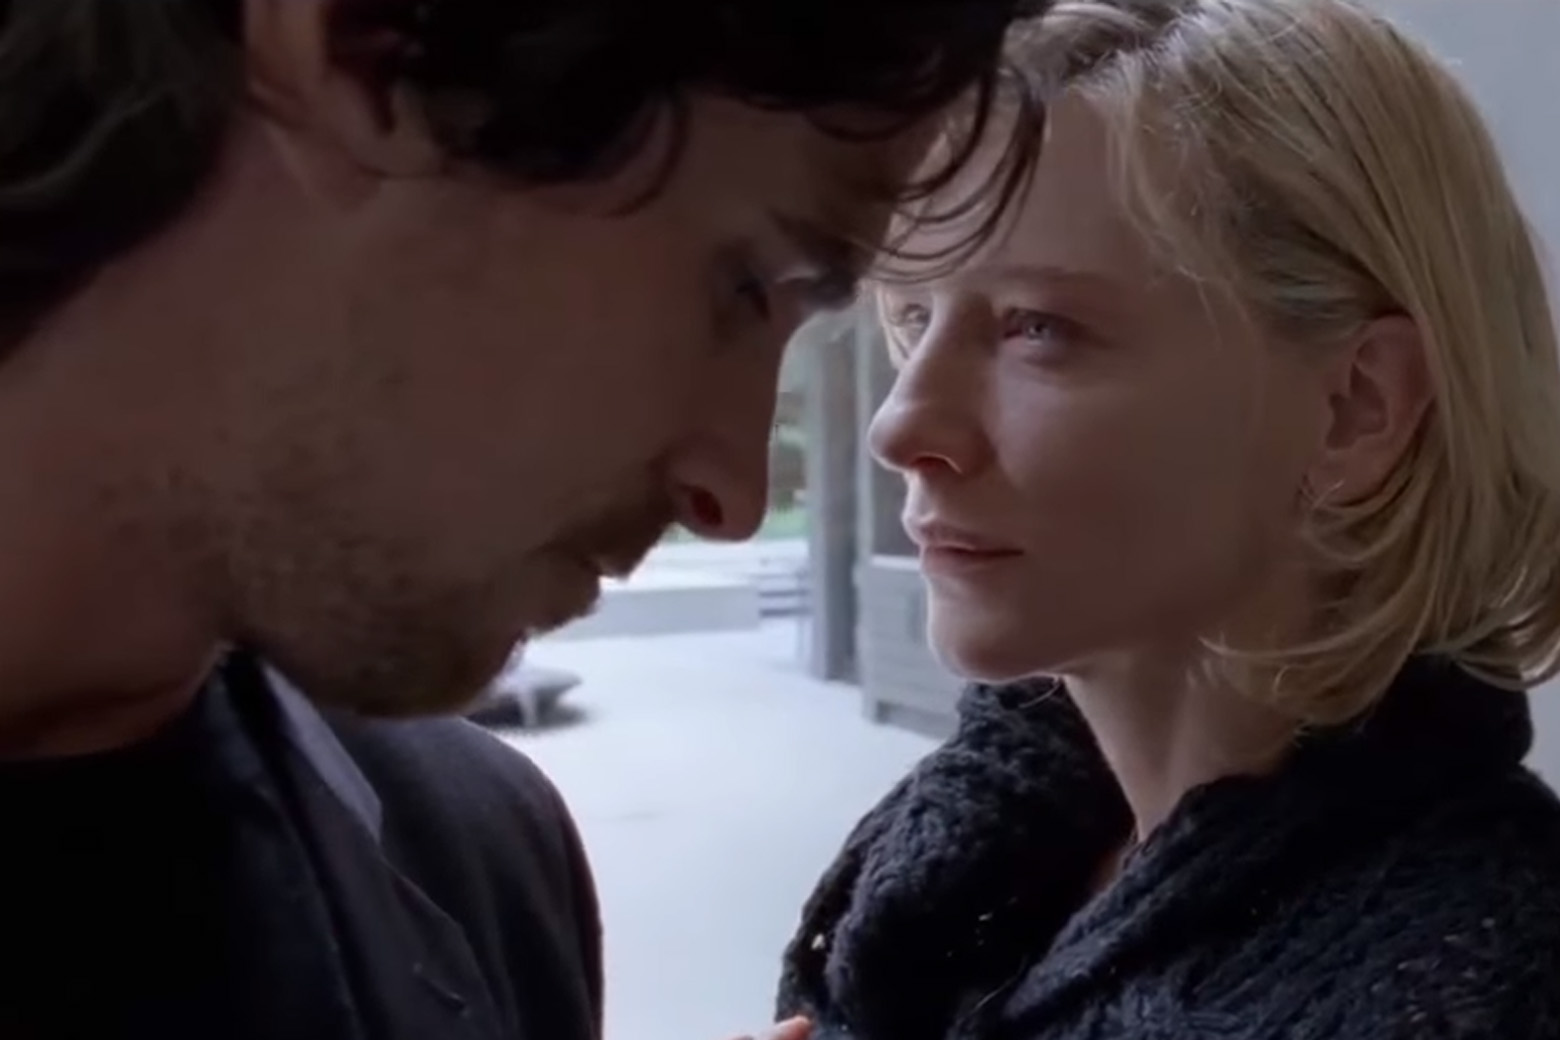 Terrence Malick's indulgent 'Knight of Cups' leaves us thirsty